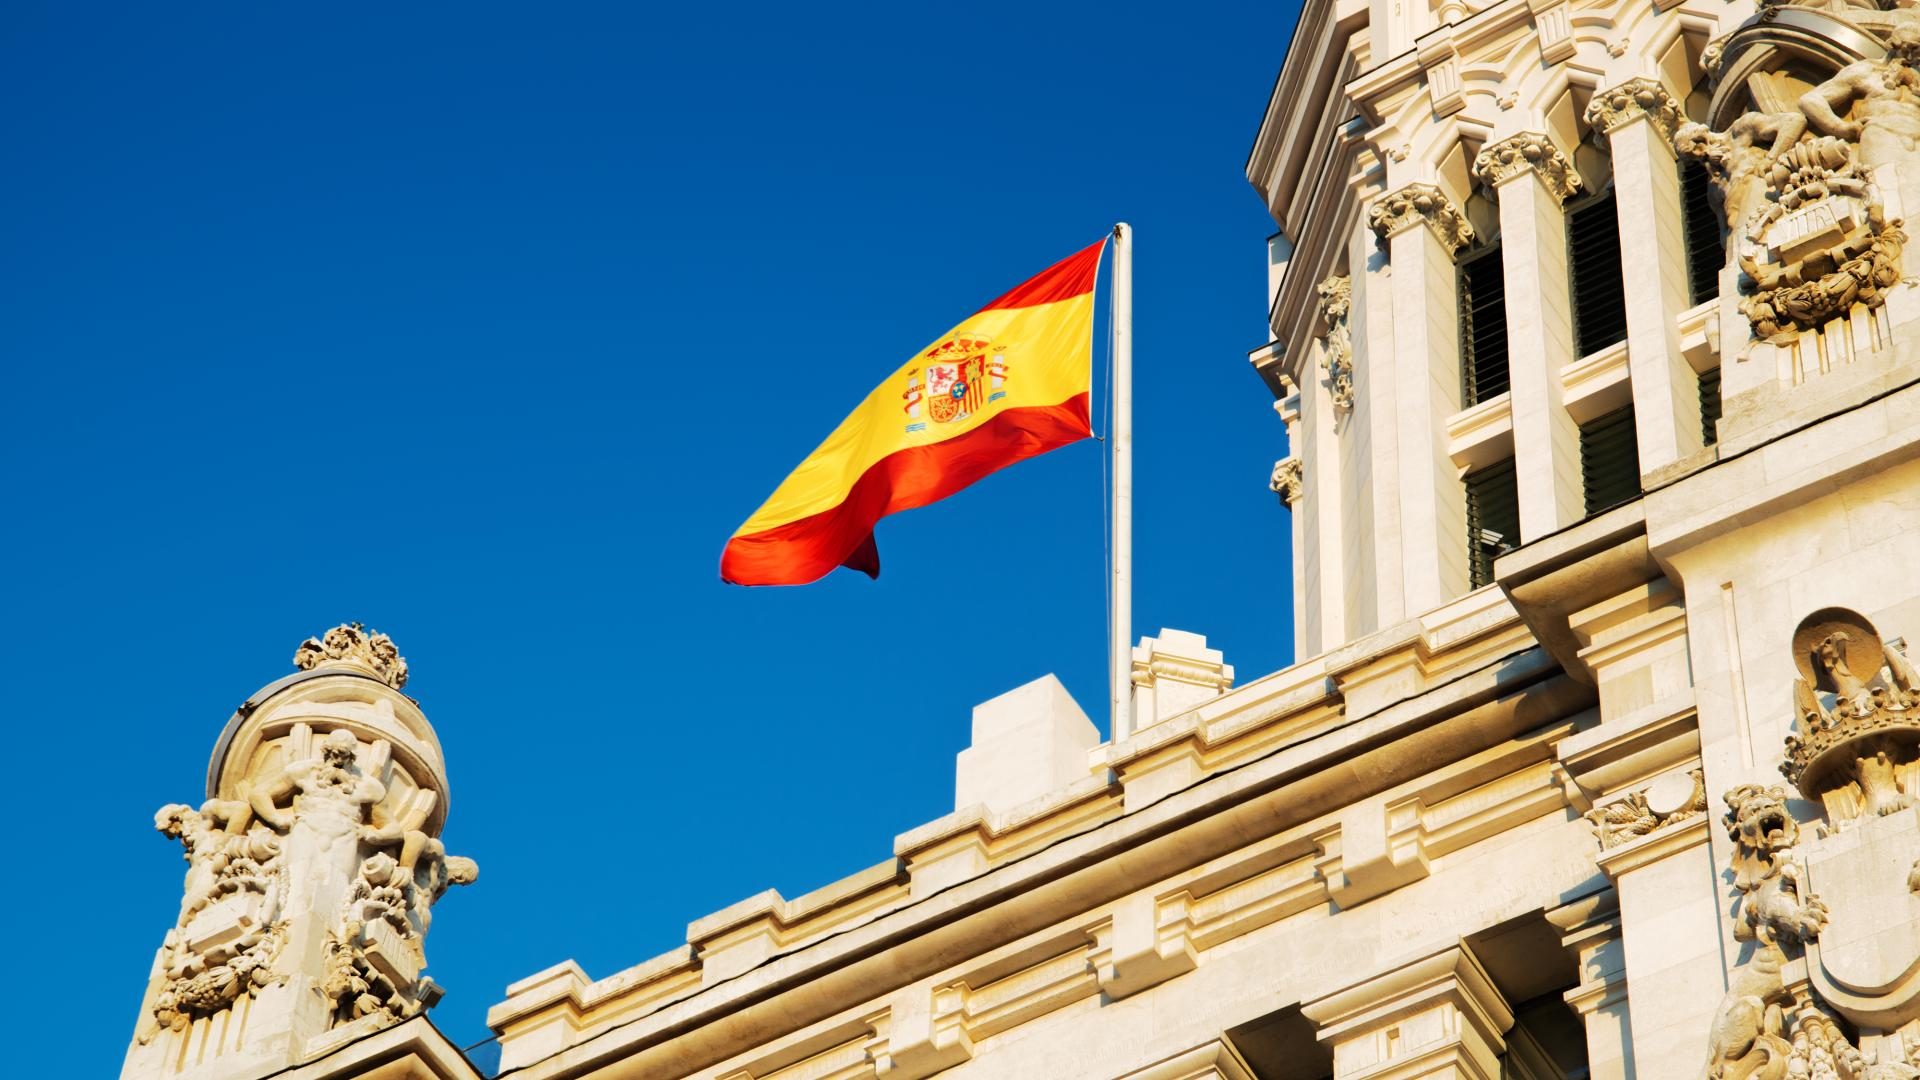 Spanish flag flying on a building in Spain